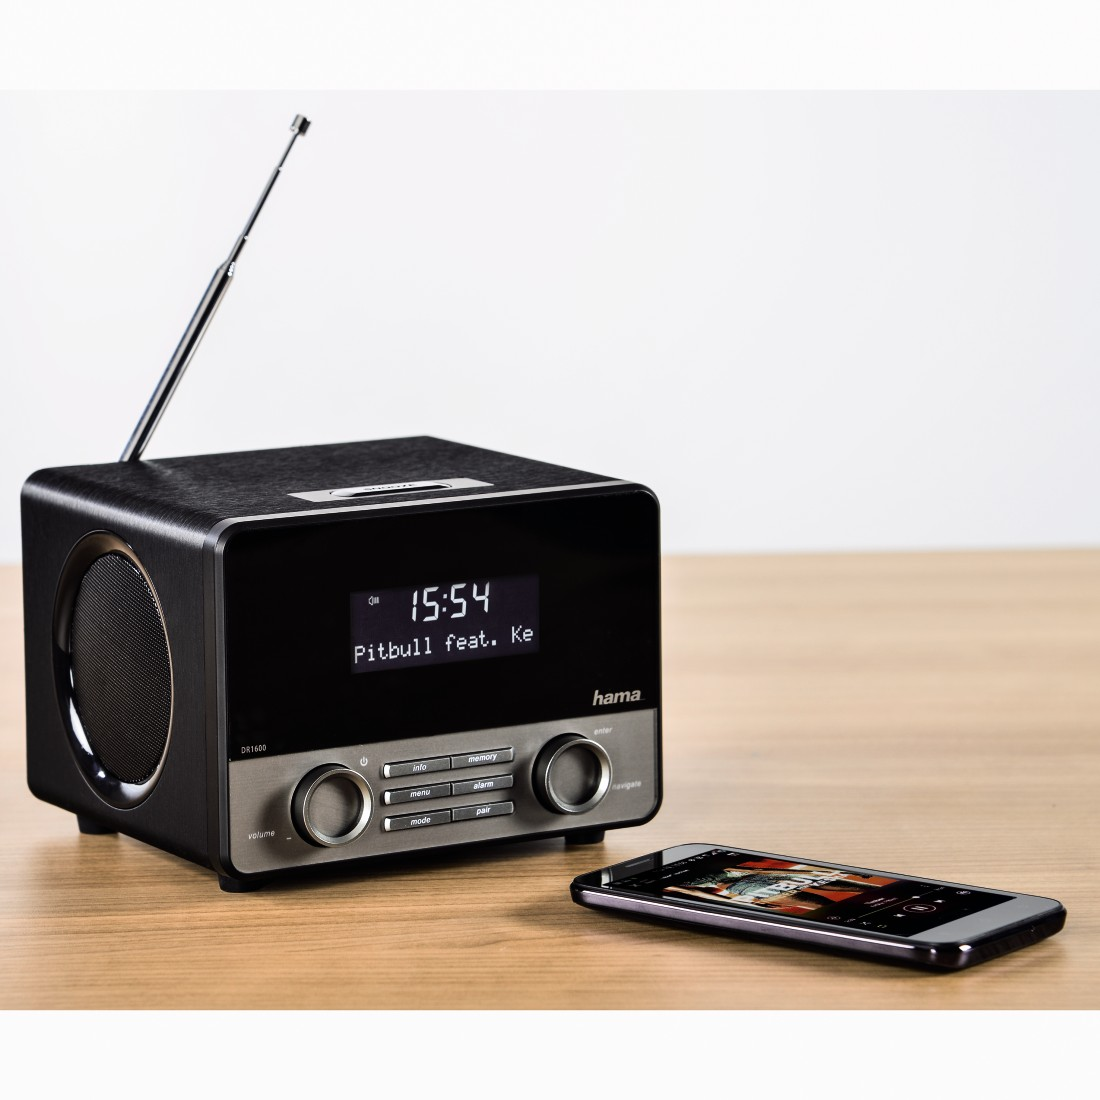 awx4 High-Res Appliance 4 - Hama, DR1600BT Digital Radio, DAB+/FM/Bluetooth